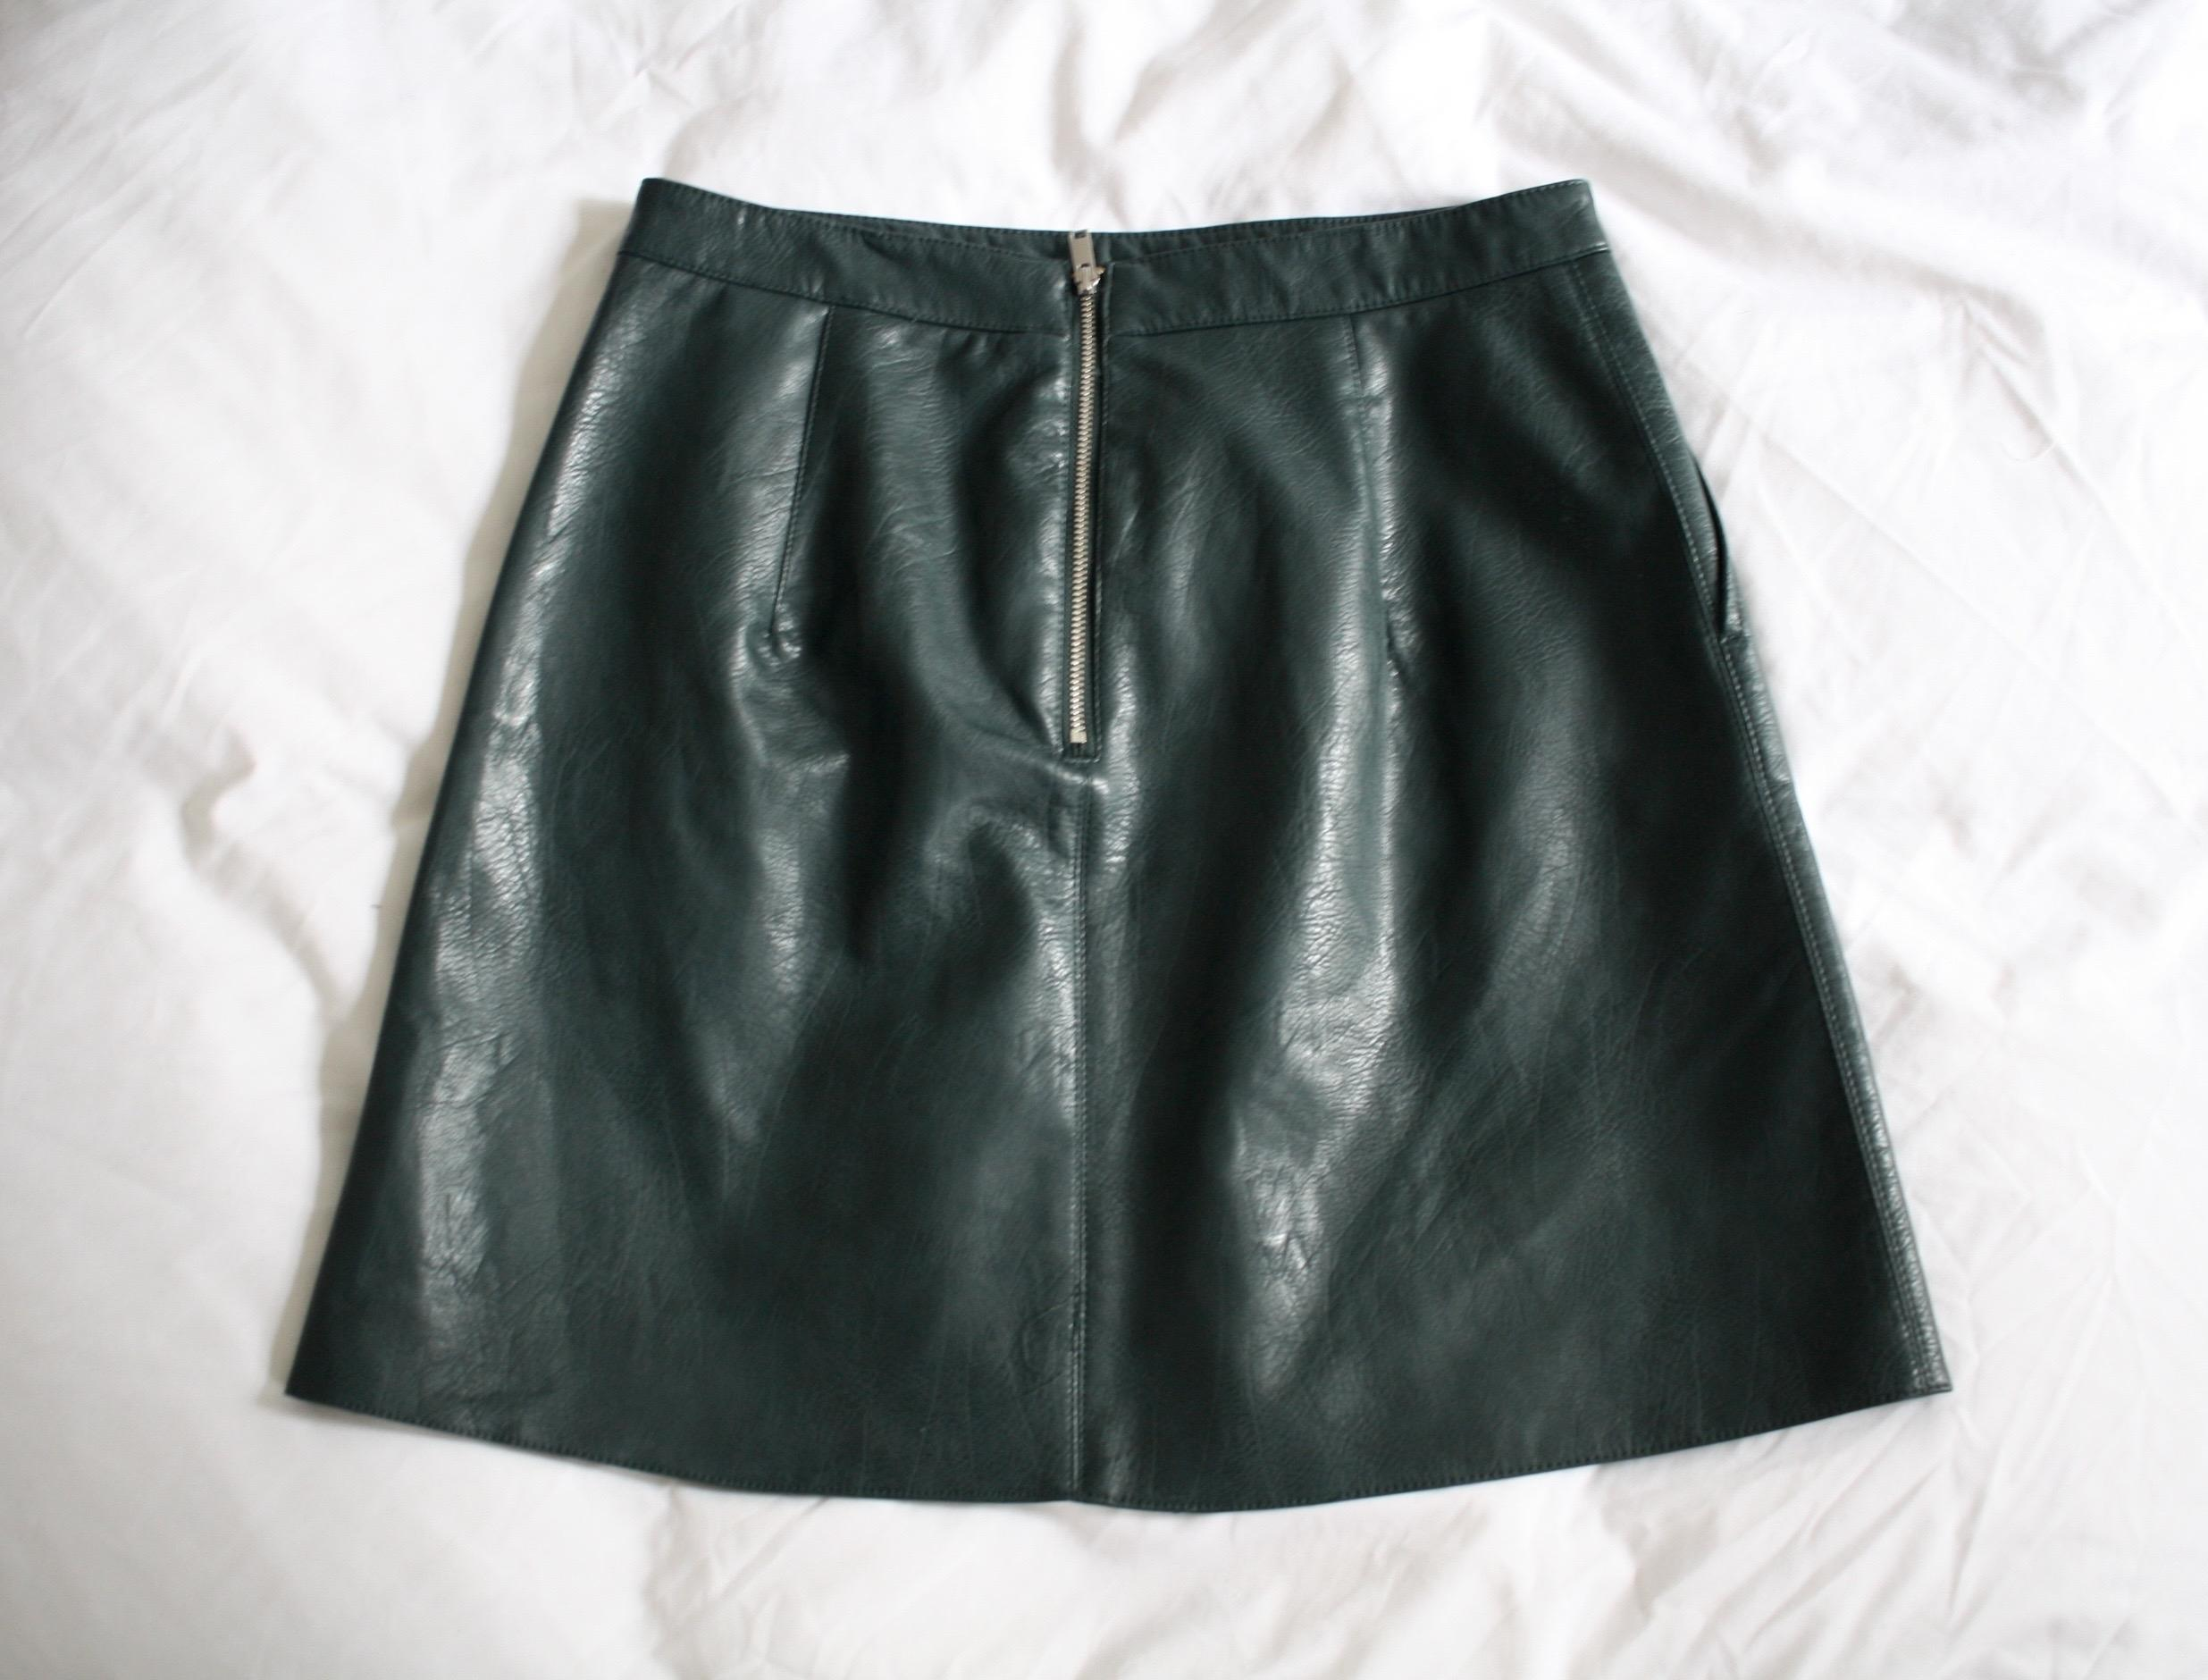 Zara A-line Faux Leather Mini Skirt - 36% Off Retail